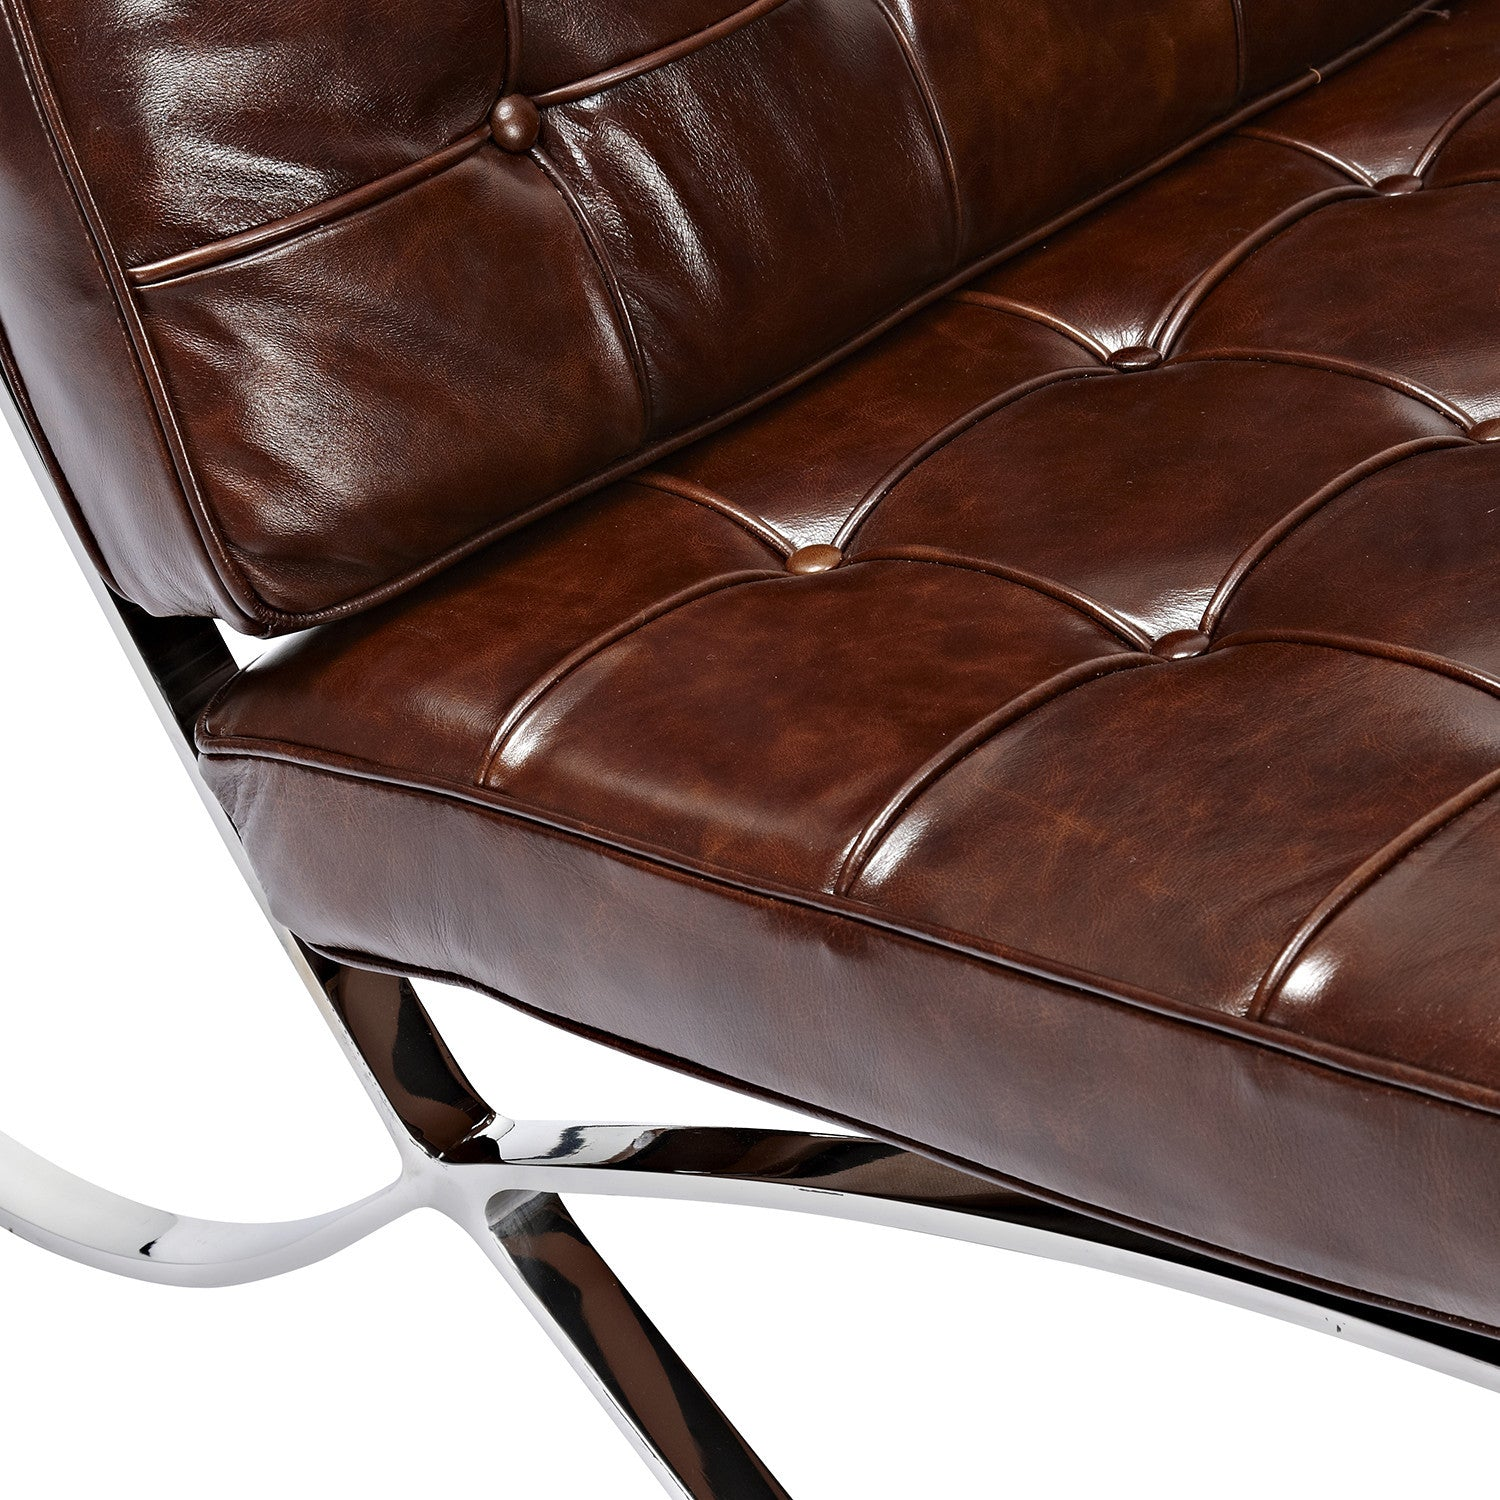 ... Barcelona Style Chair   Vintage Aged Leather. Mobile Gallery